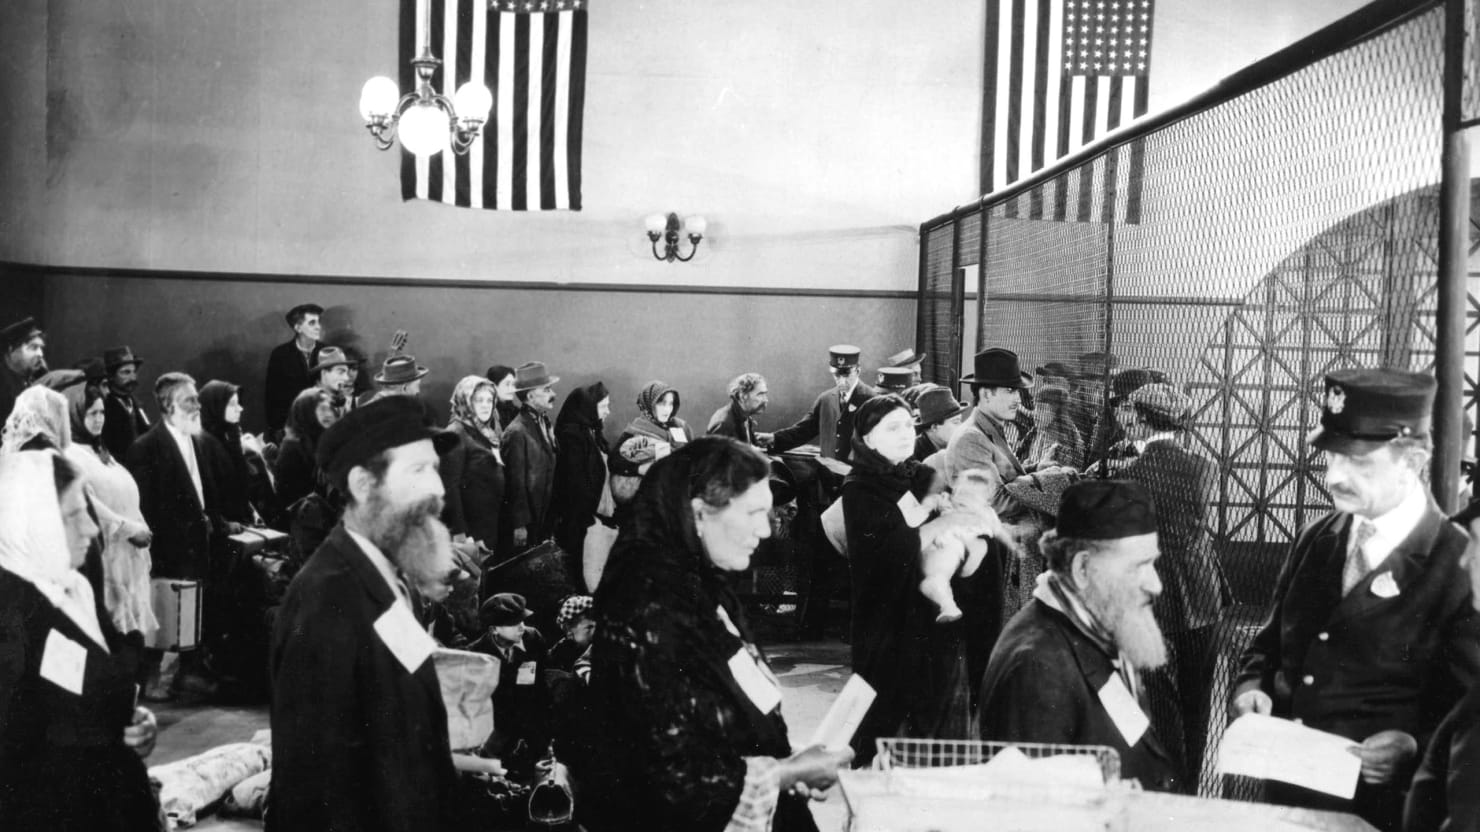 K And J Auto >> Ellis Island's Doubled-Edged Legacy